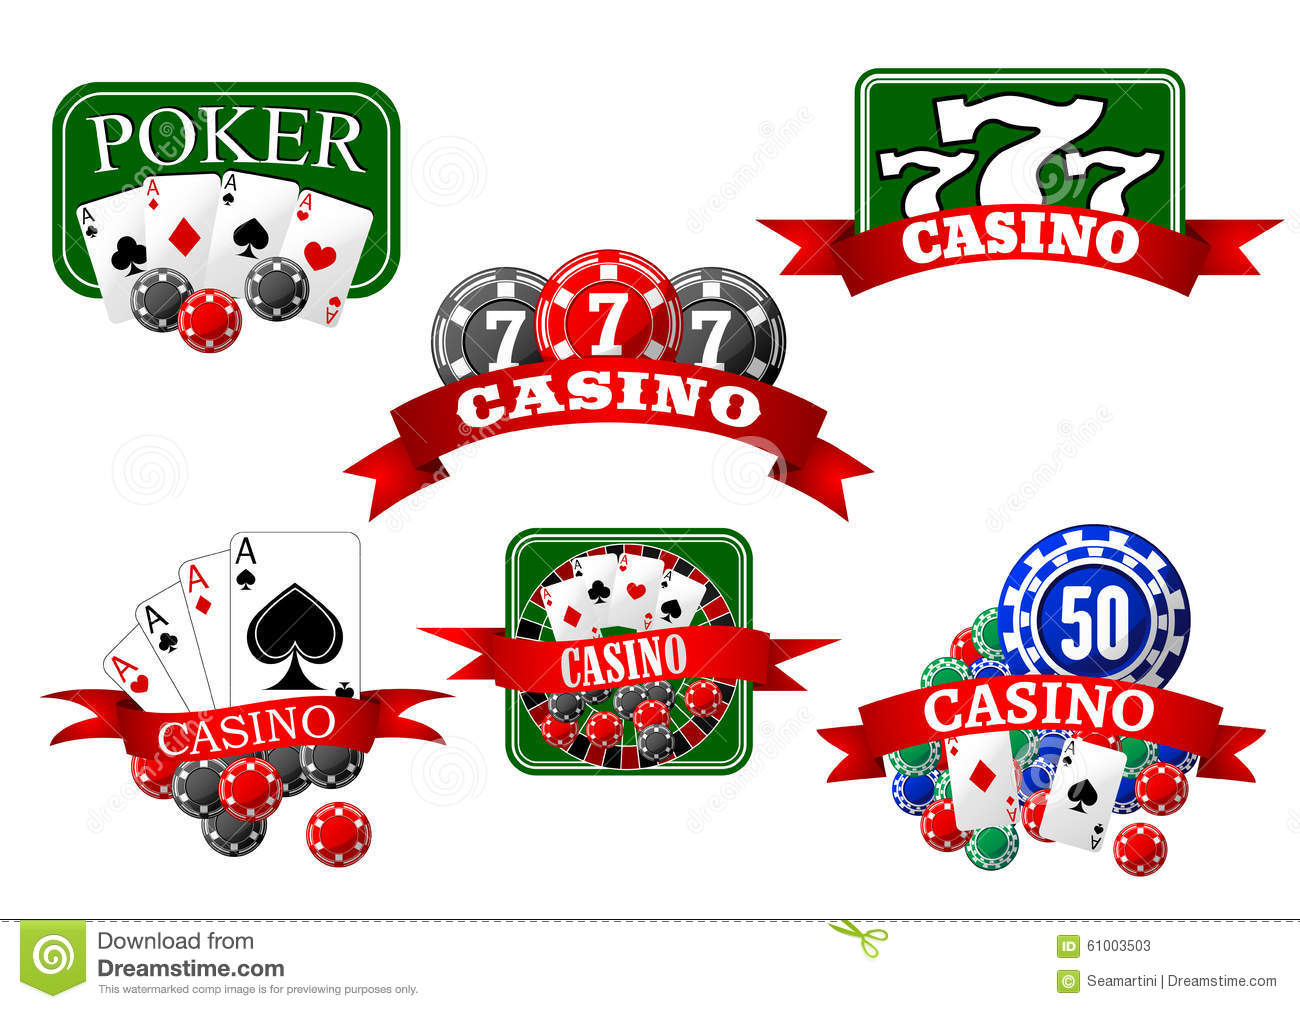 How to Gamble 77262